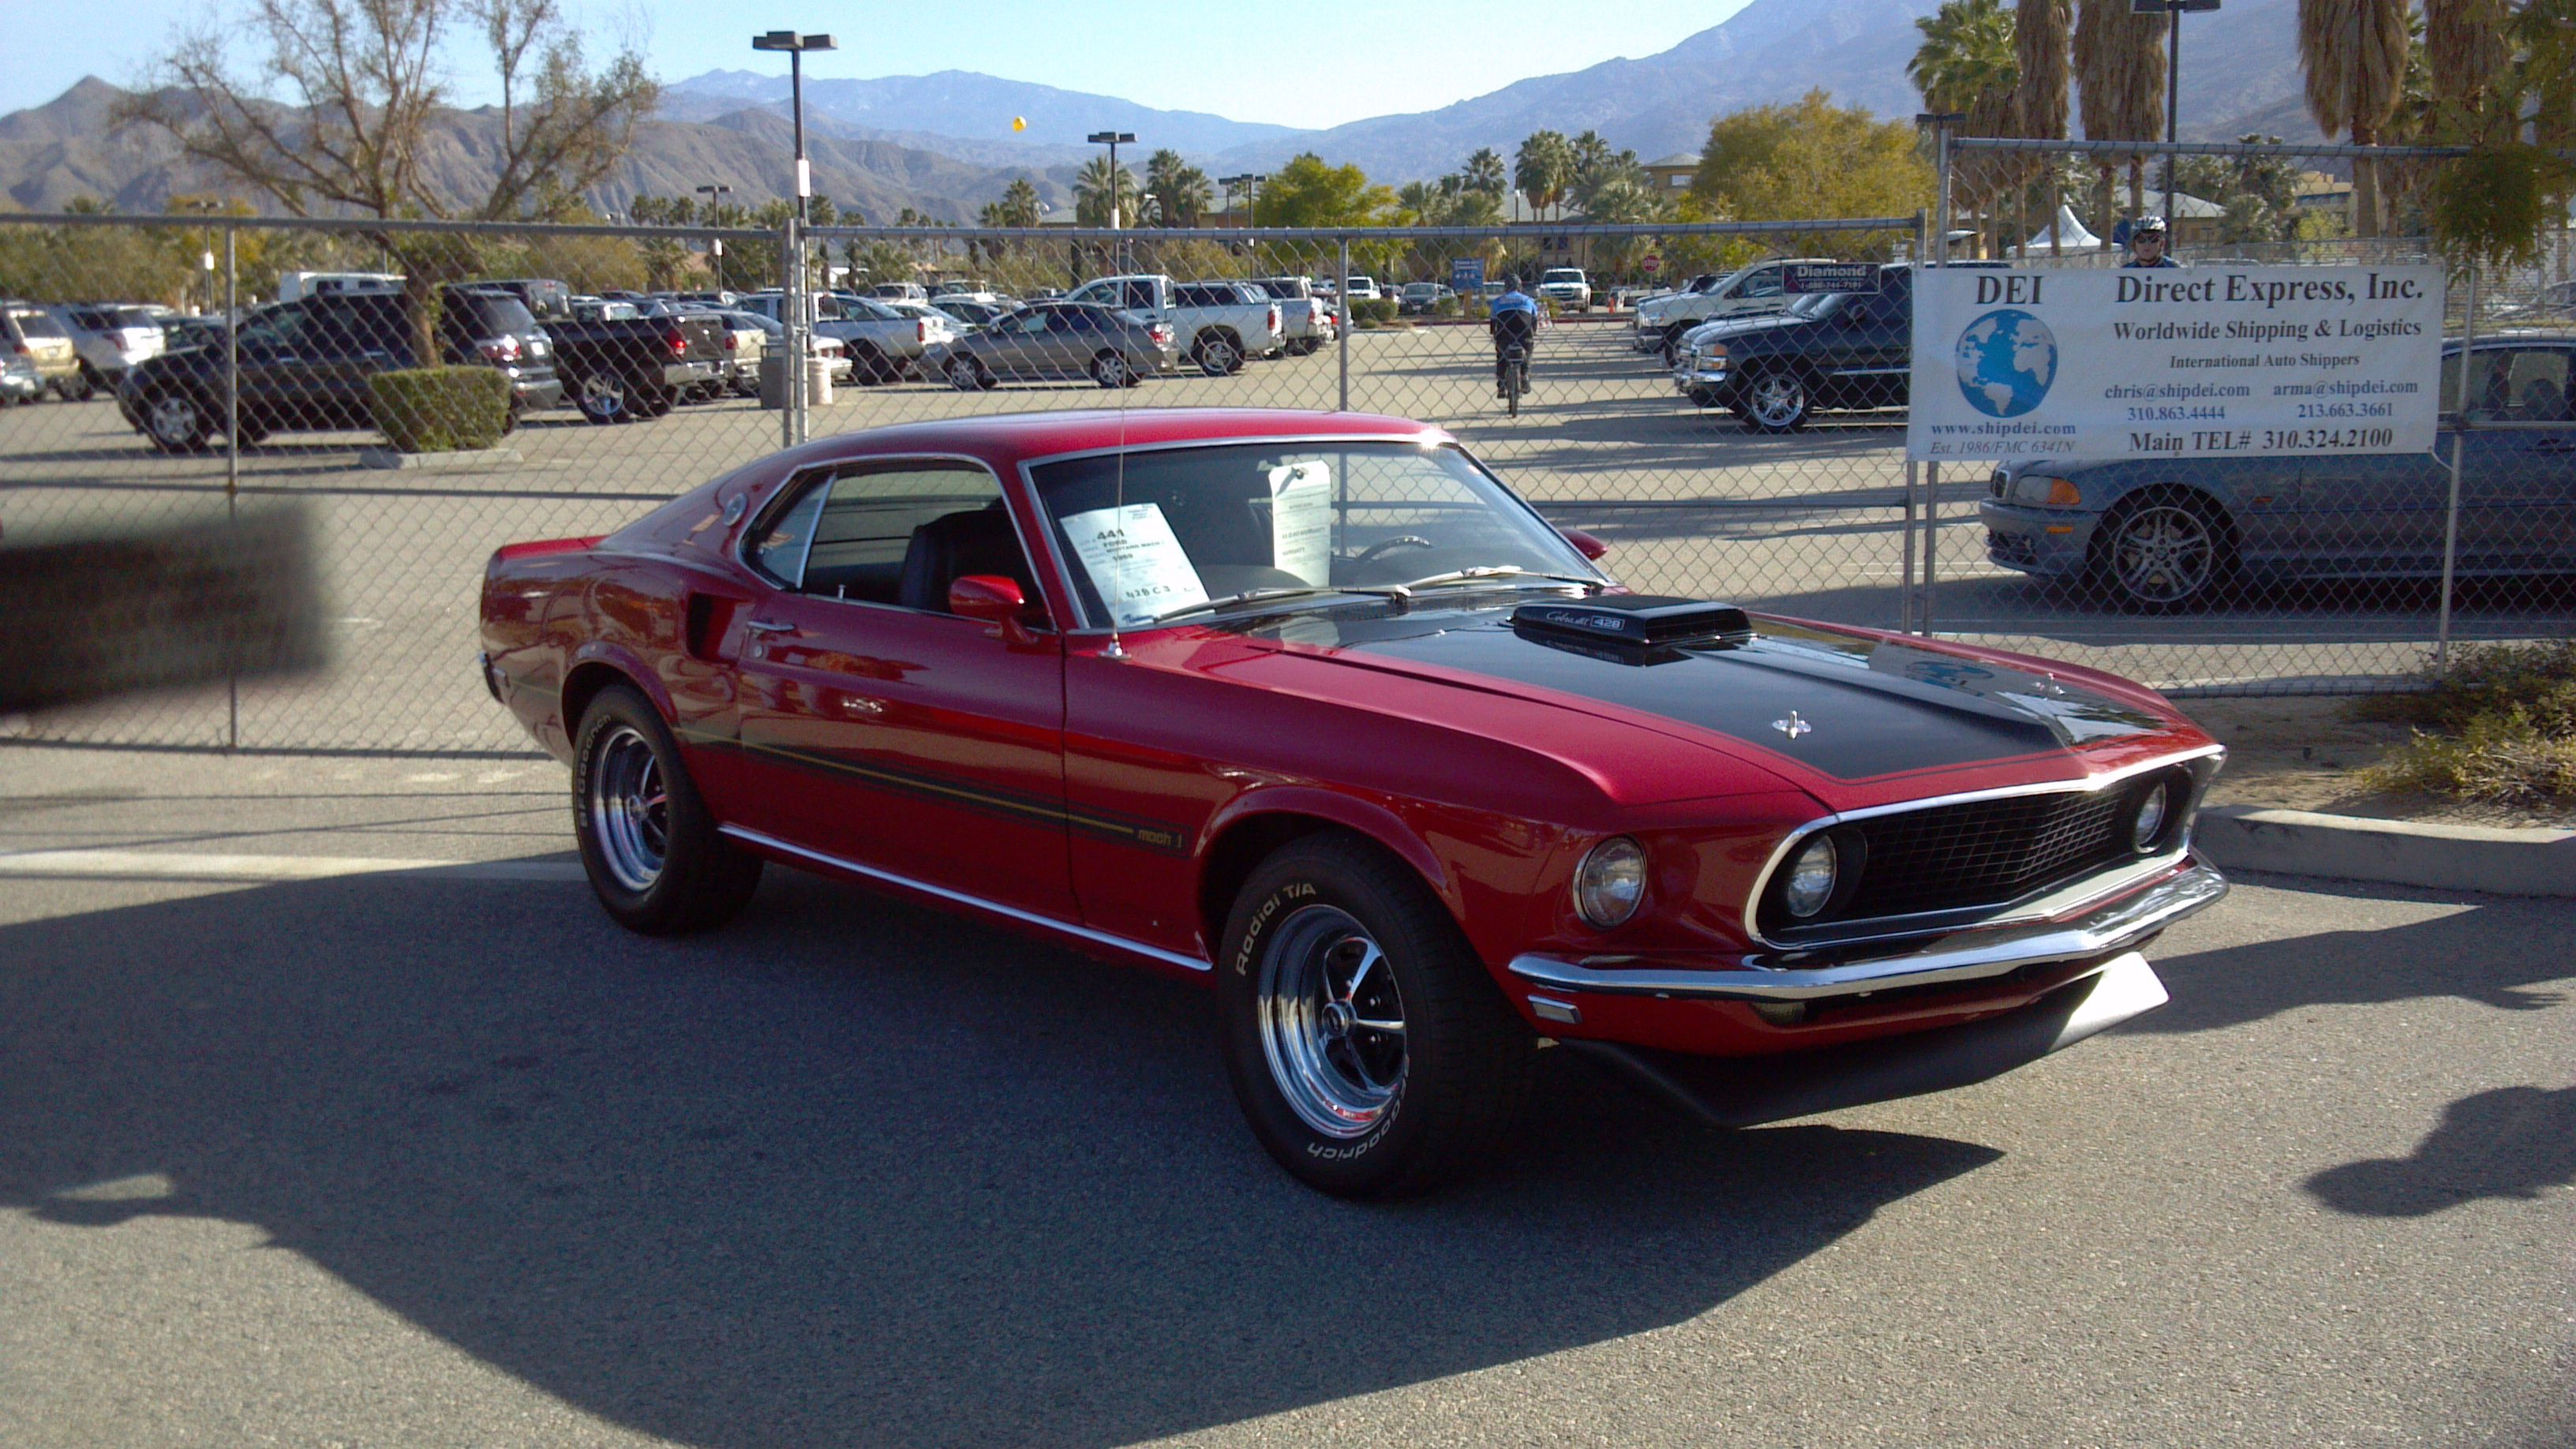 1969 mach 1 428 cobra jet 4 speed in candy apple red shaker magnum 500 39 s american muscle. Black Bedroom Furniture Sets. Home Design Ideas